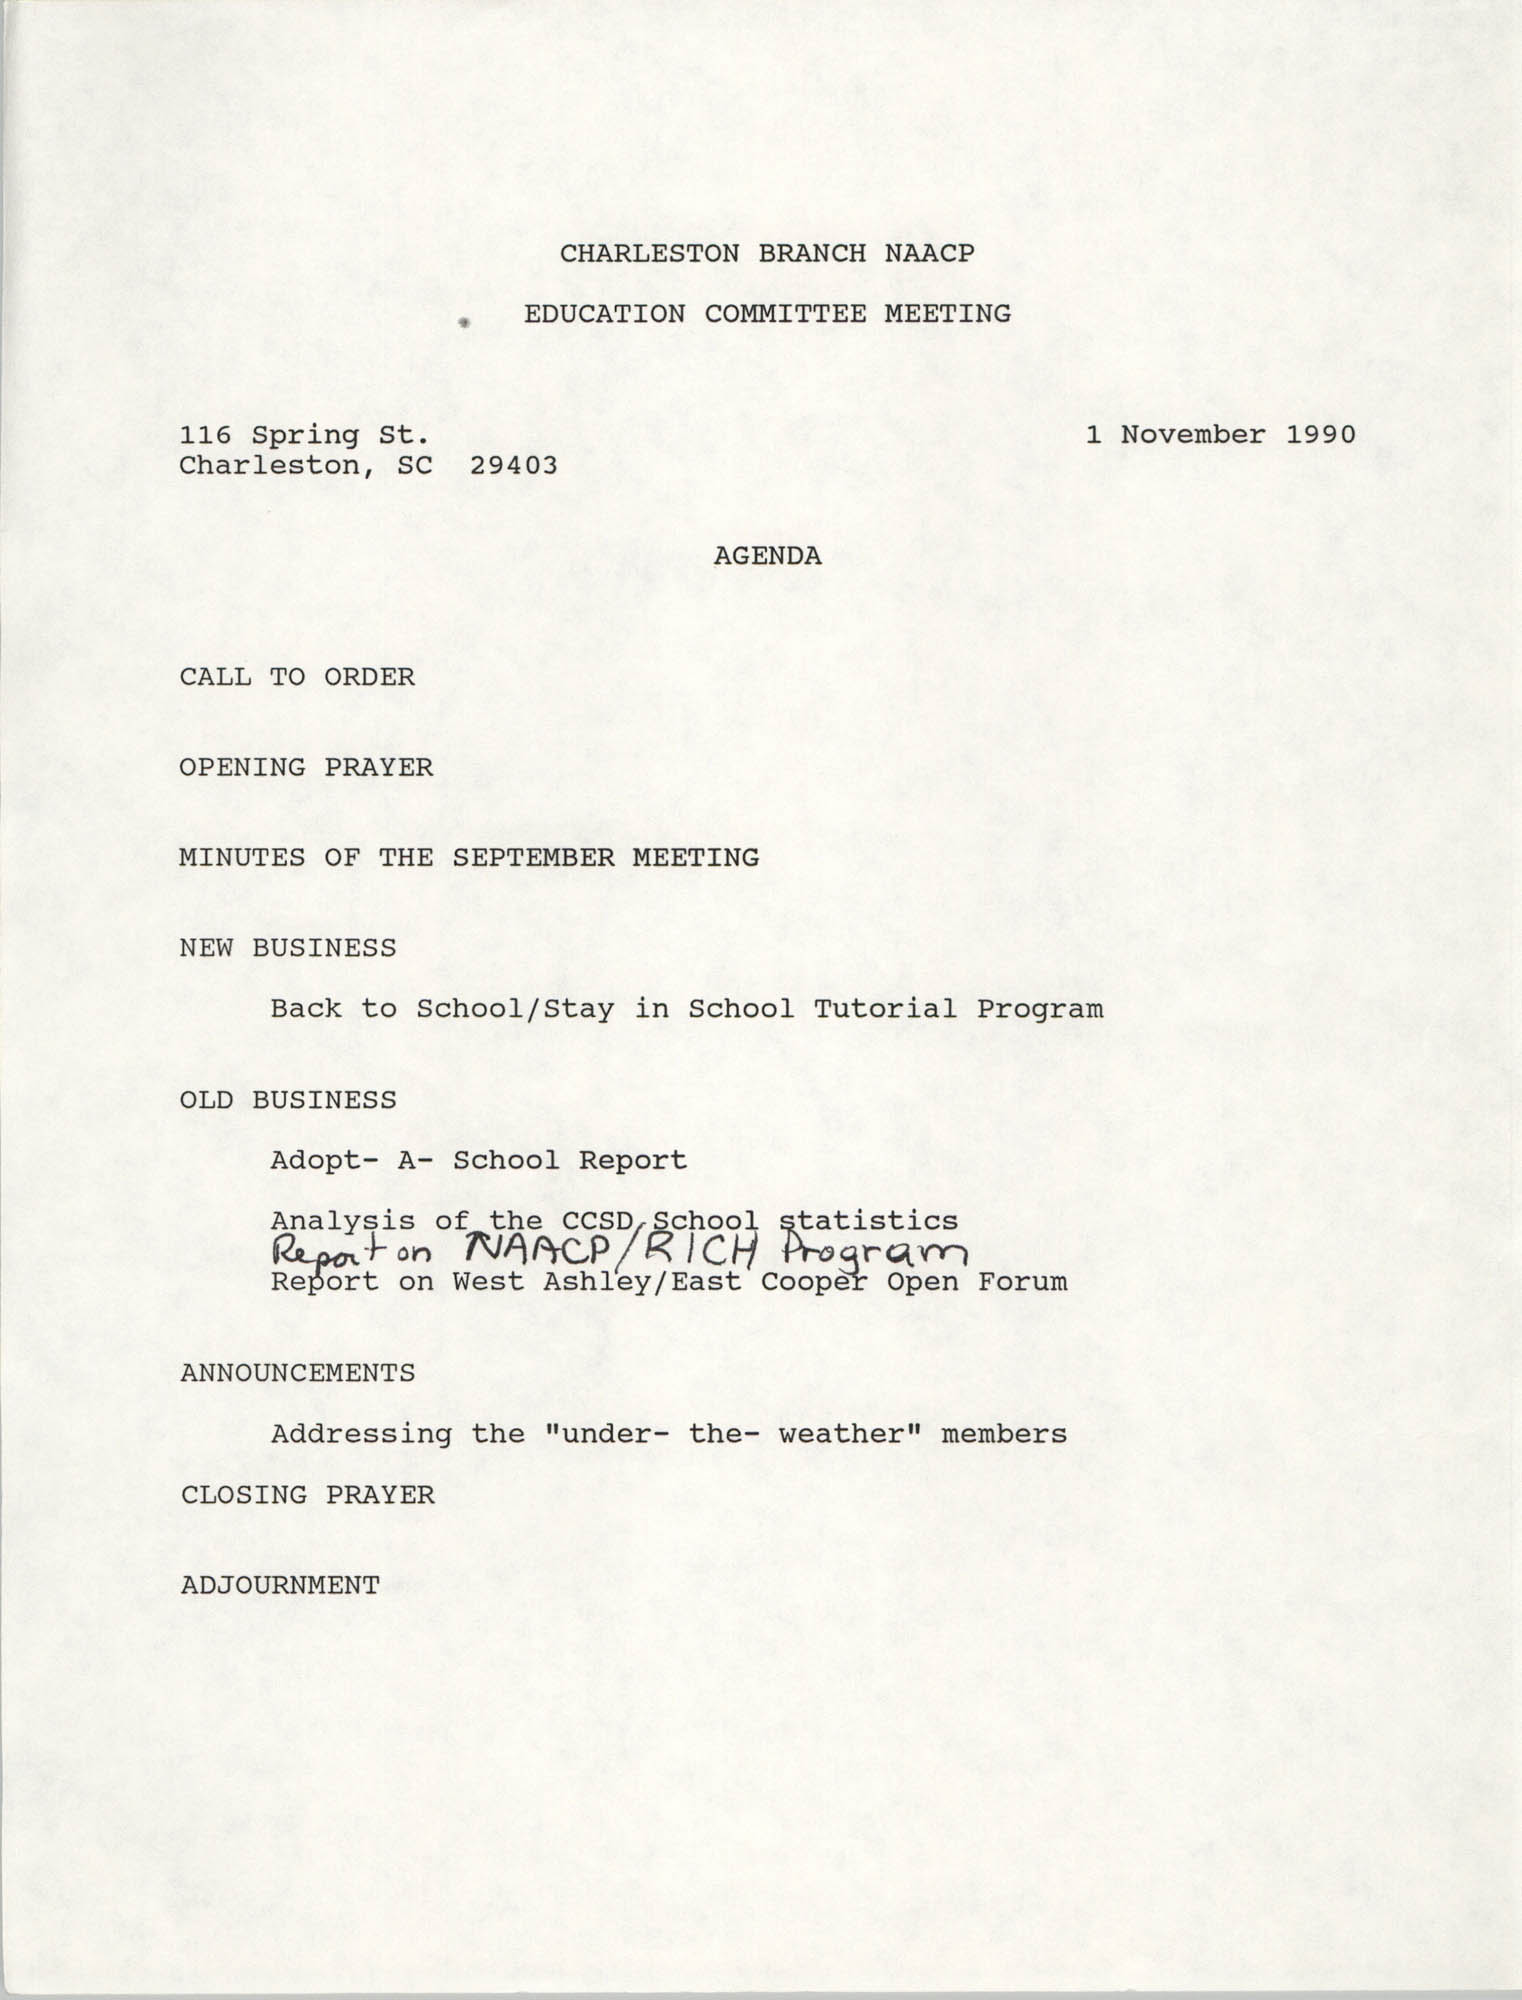 Charleston Branch of the NAACP Education Committee Agenda, November 1, 1990